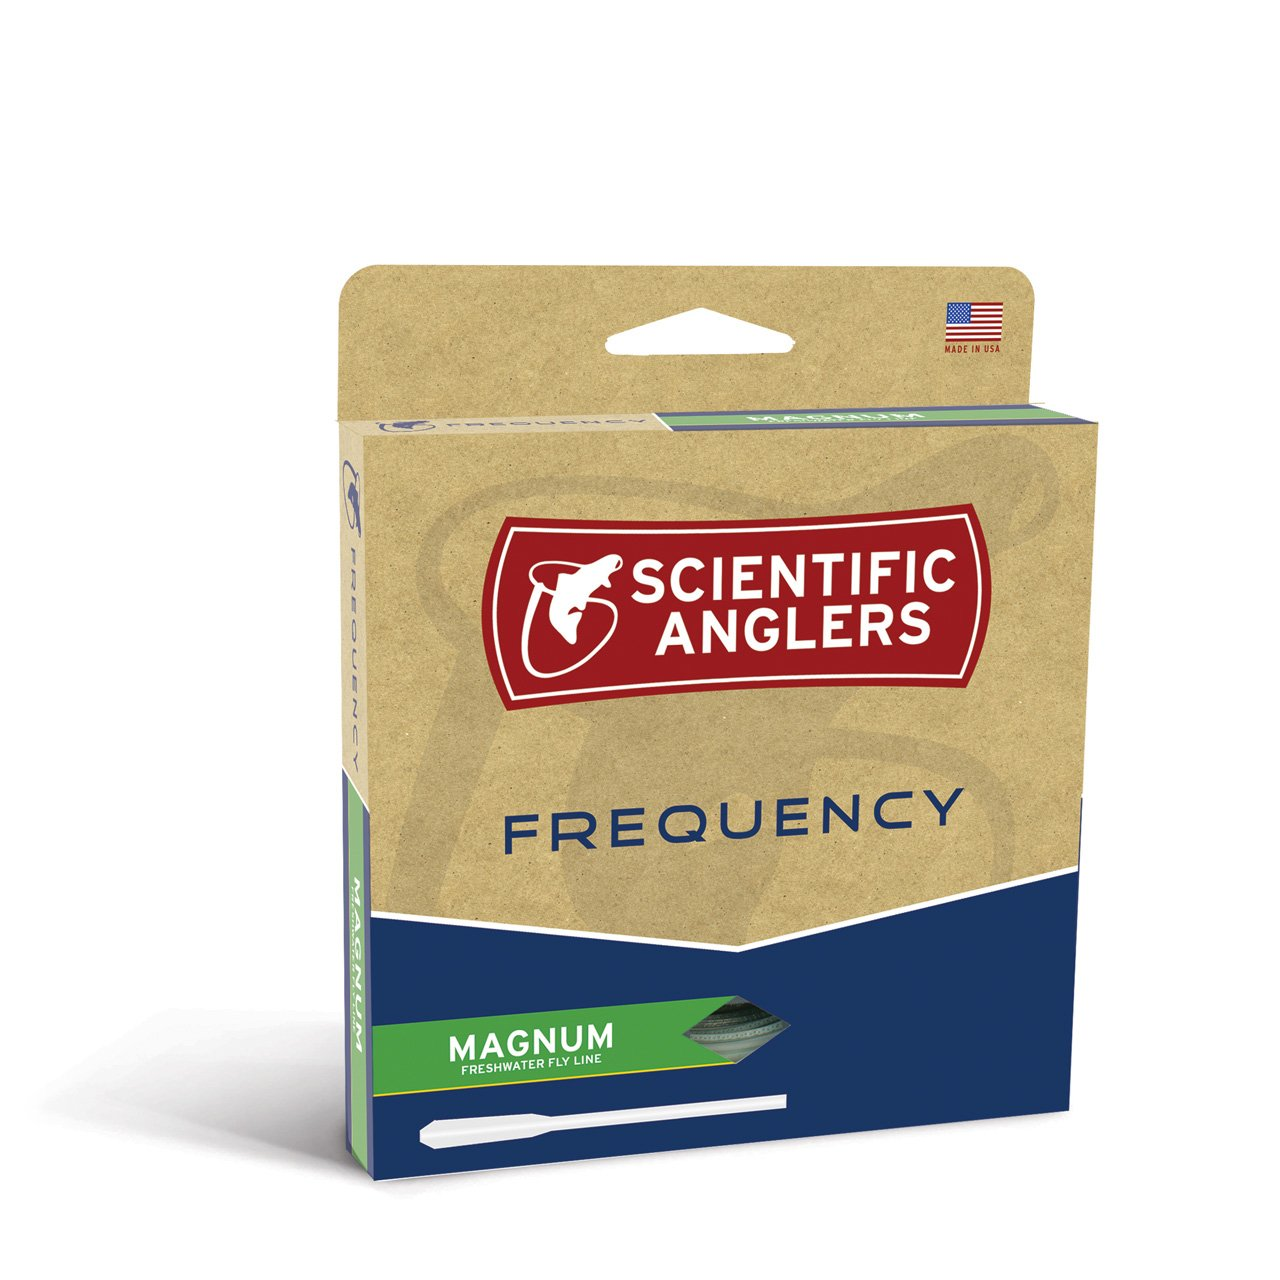 Scientific Anglers WF-8-F Frequency Magnum, 100-Feet